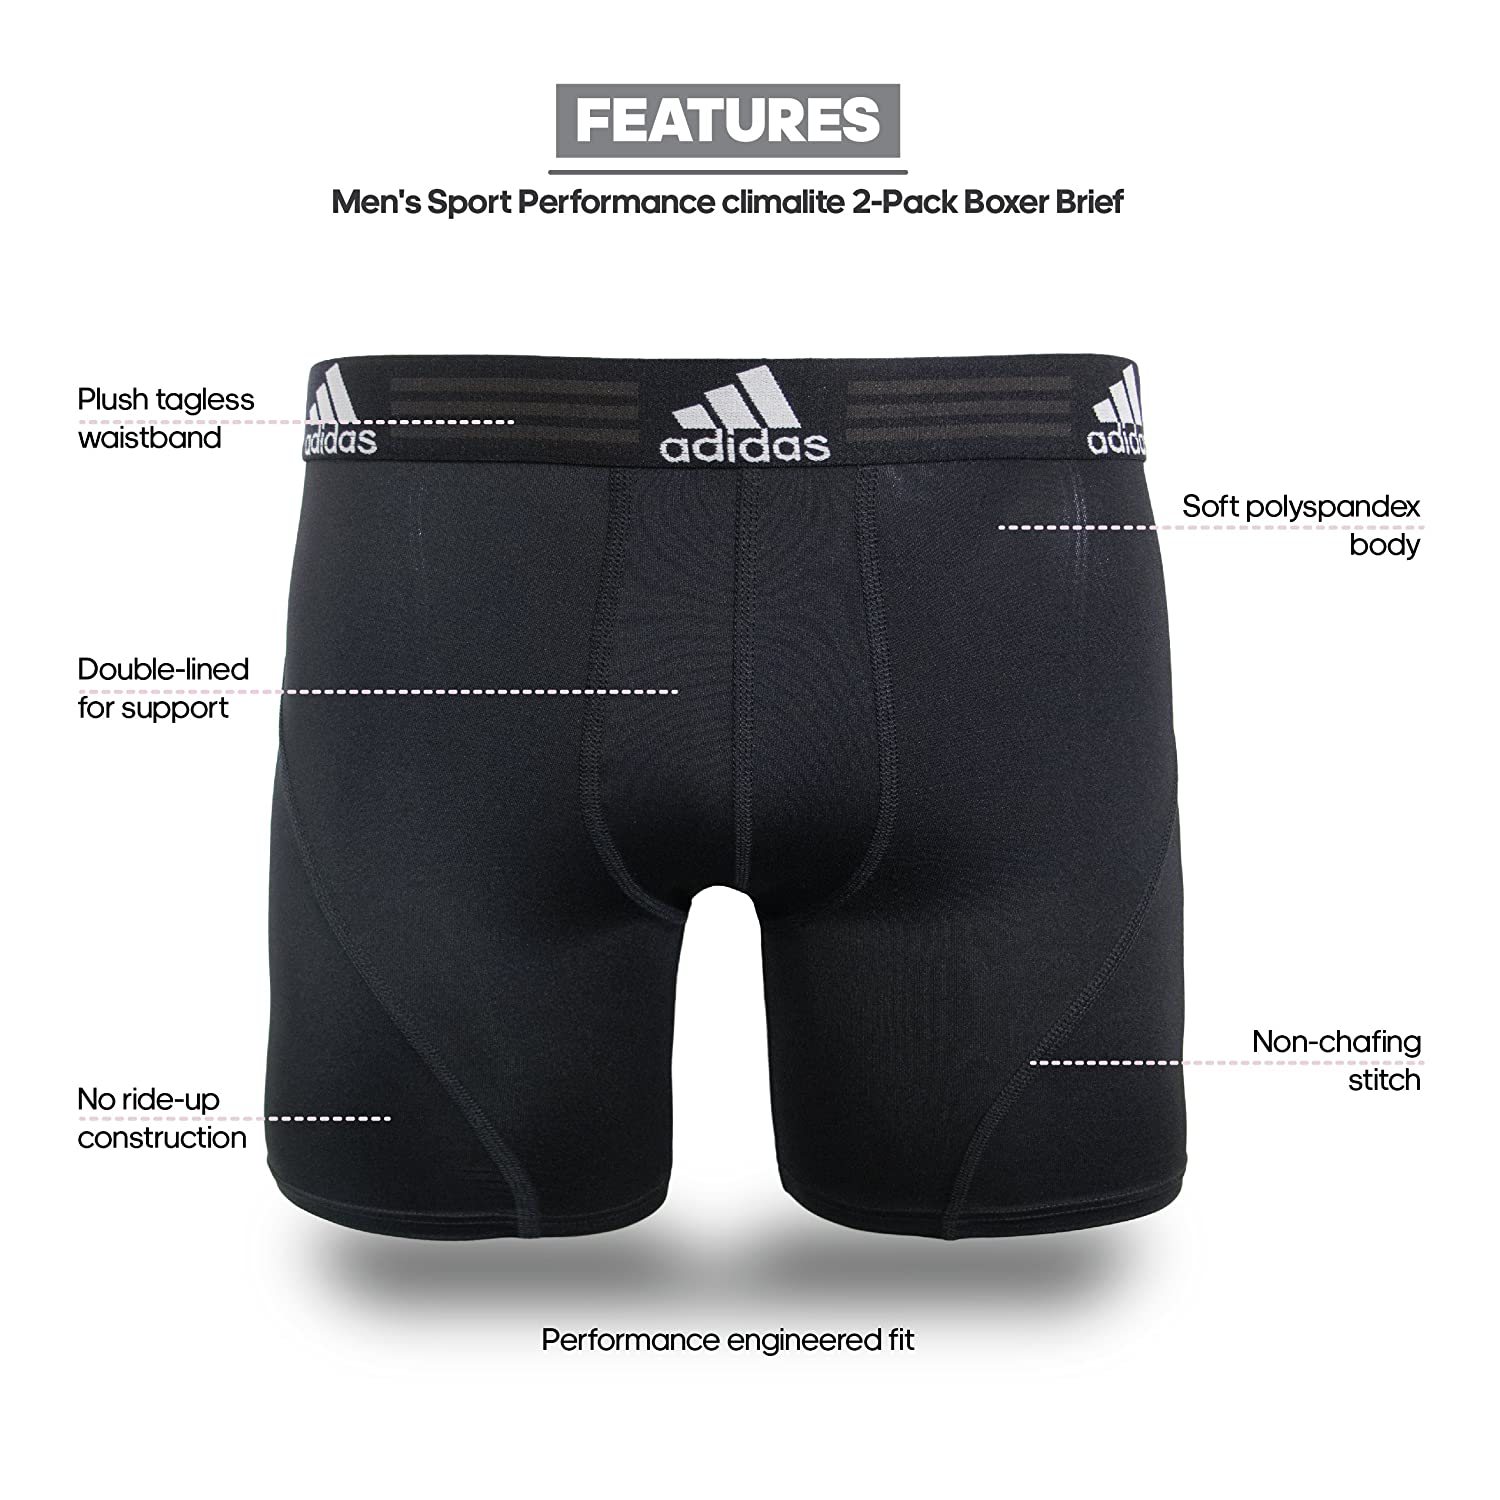 a0a229ea208e3 Amazon.com: adidas Men's Sport Performance Climalite Boxer Brief Underwear  (2 Pack): Clothing